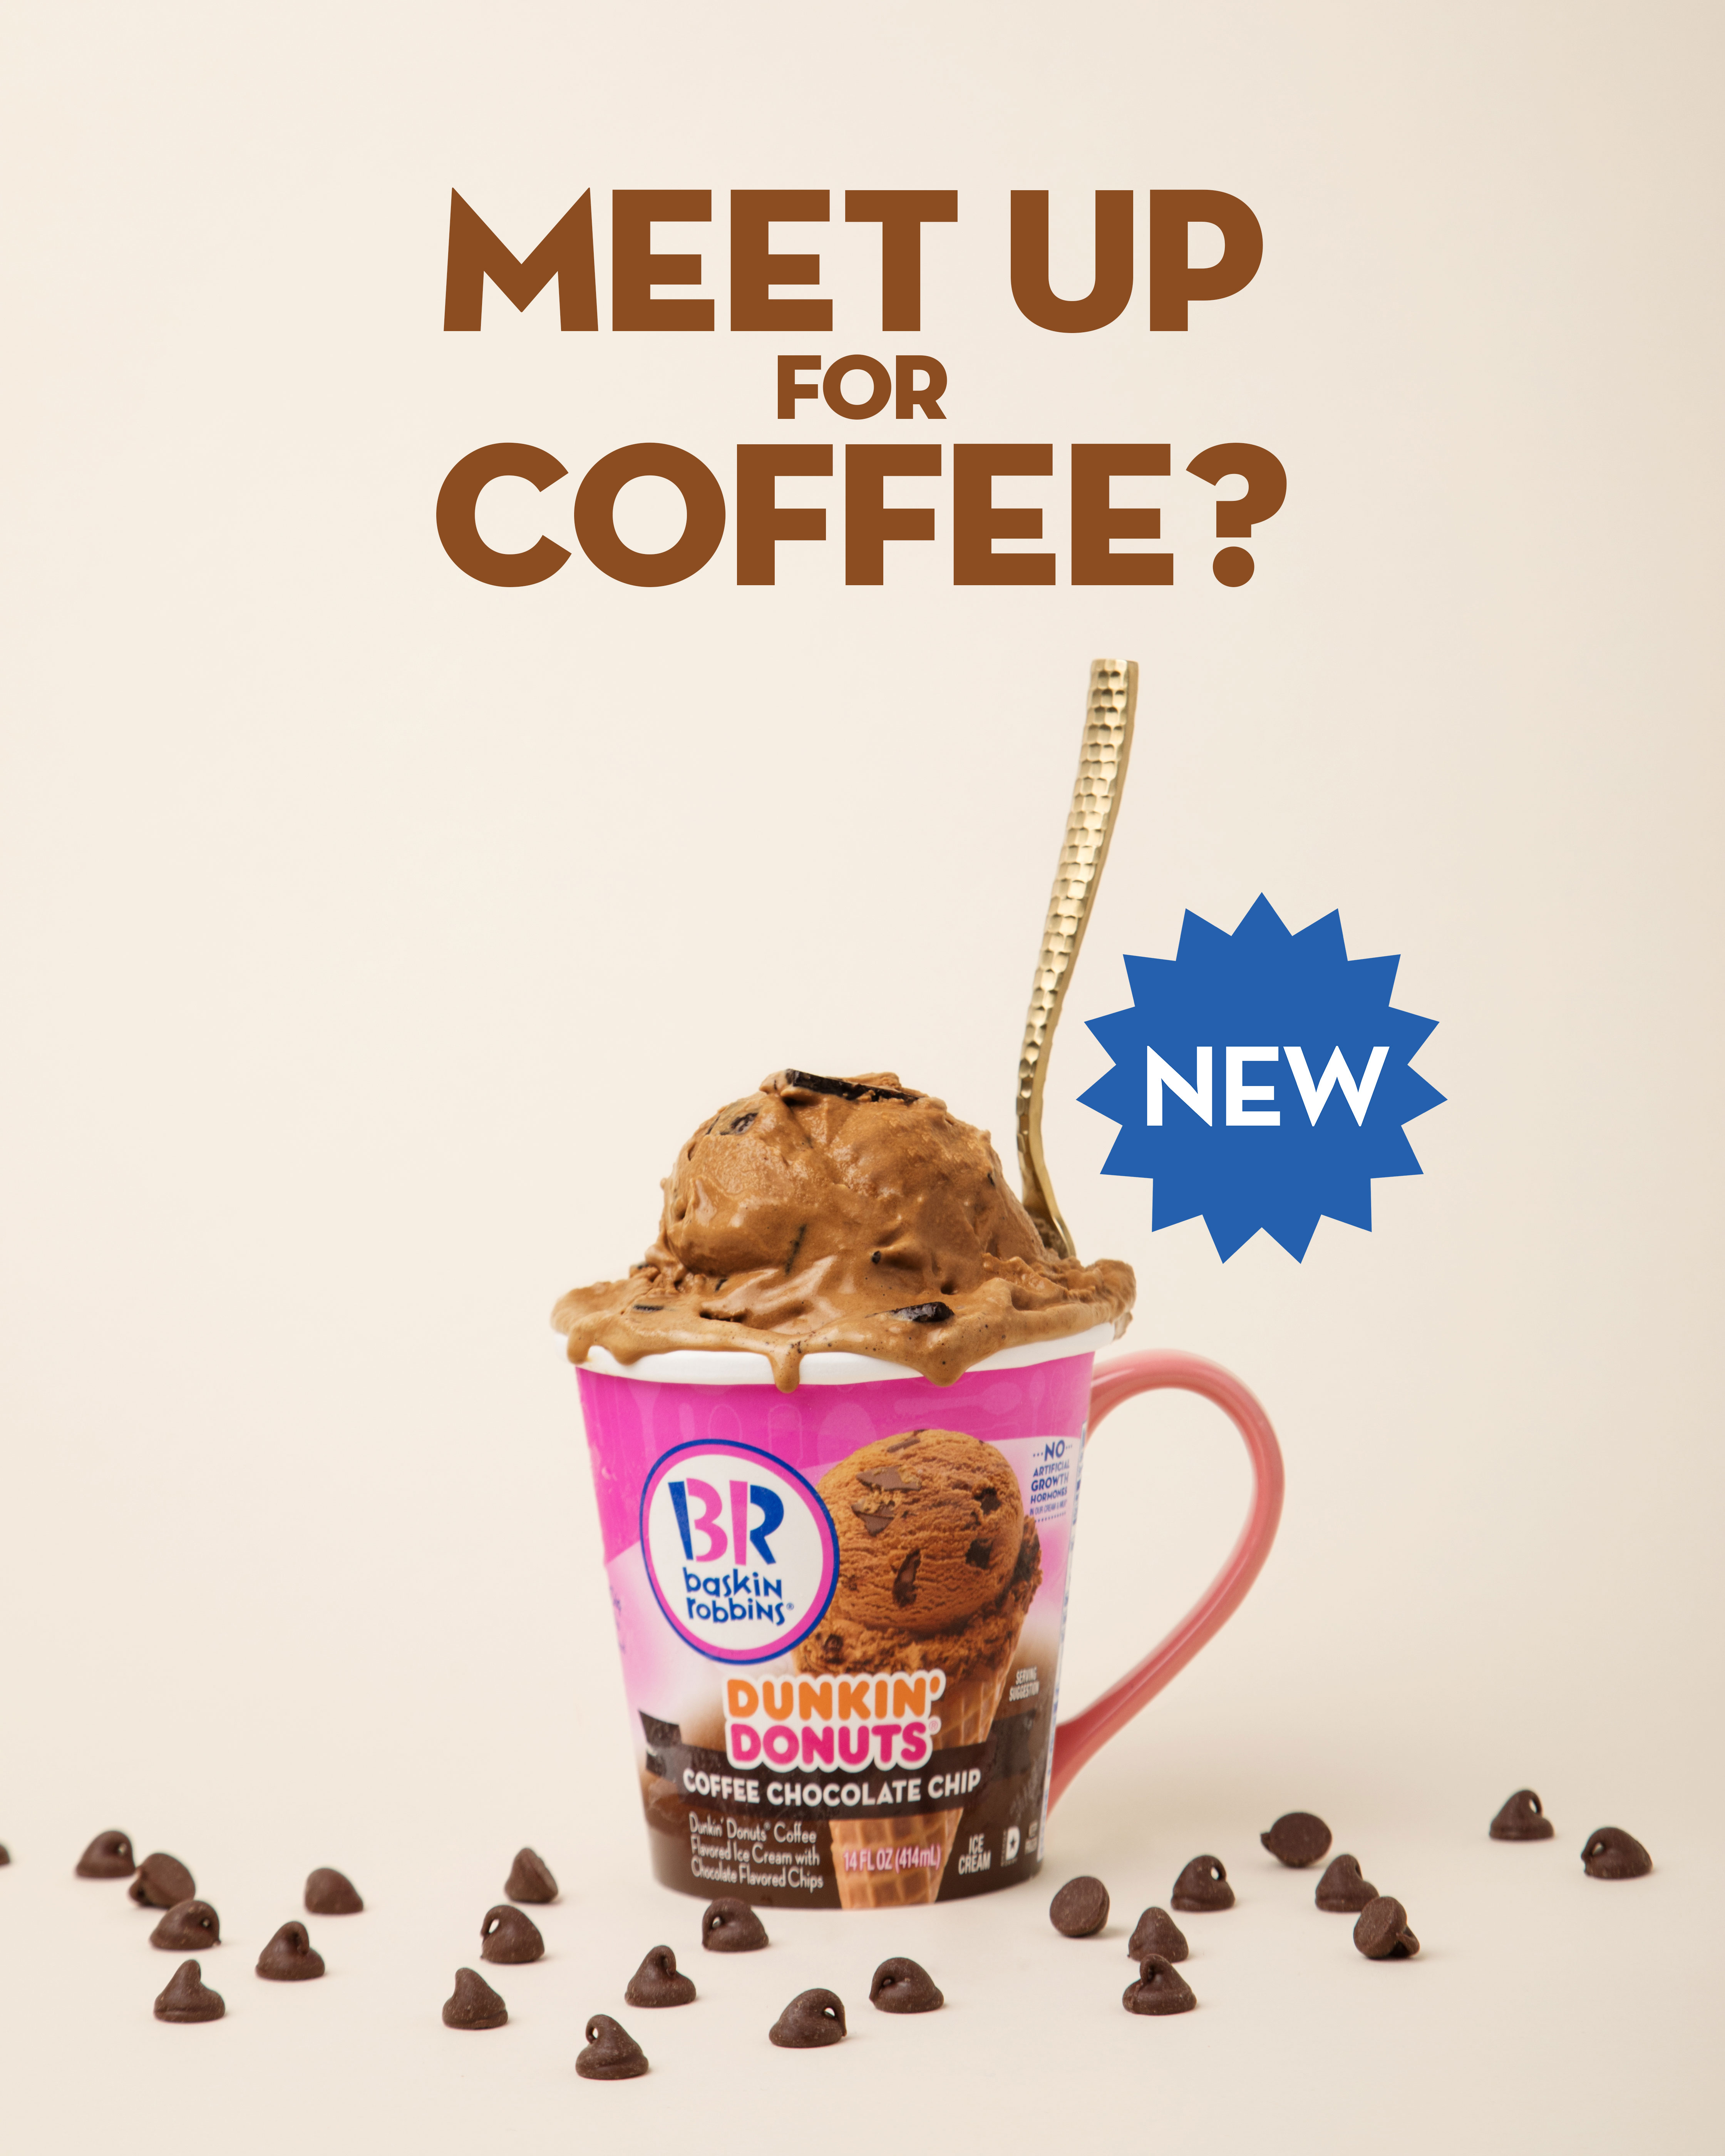 Meet Up for Coffee?